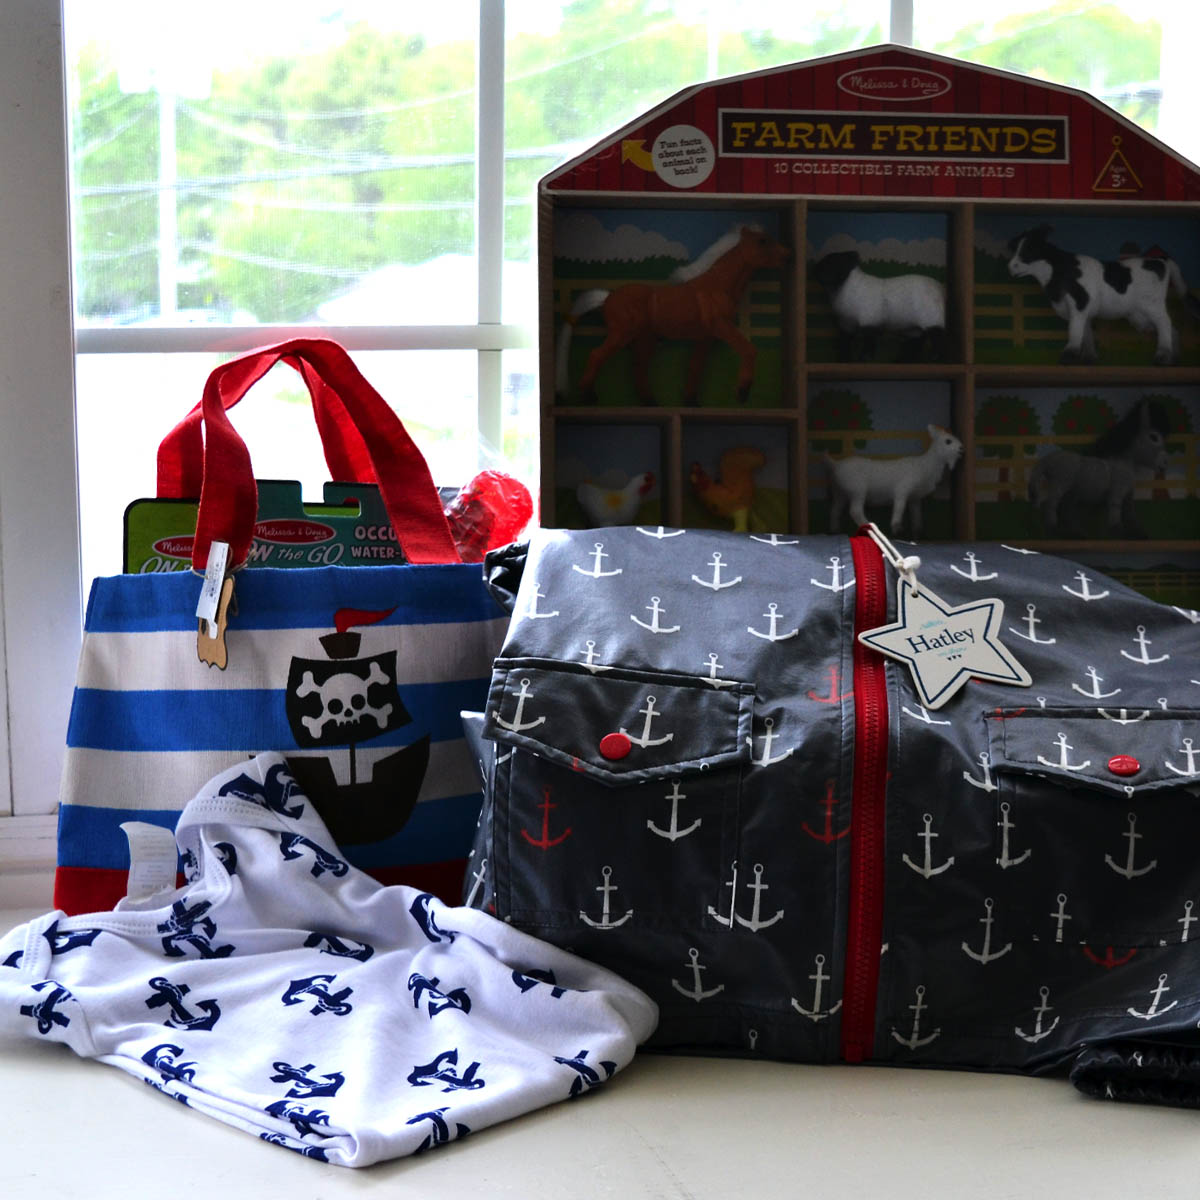 Children's Gift Basket - Generously provided by the Gleason Family, this basket contains an assortment of goodies any toddler is sure to love. From farm animals to age appropriate activity books, a pirate bag and even a stylish nautical rain jacket, this basket is sure to provide lots of enjoyment.